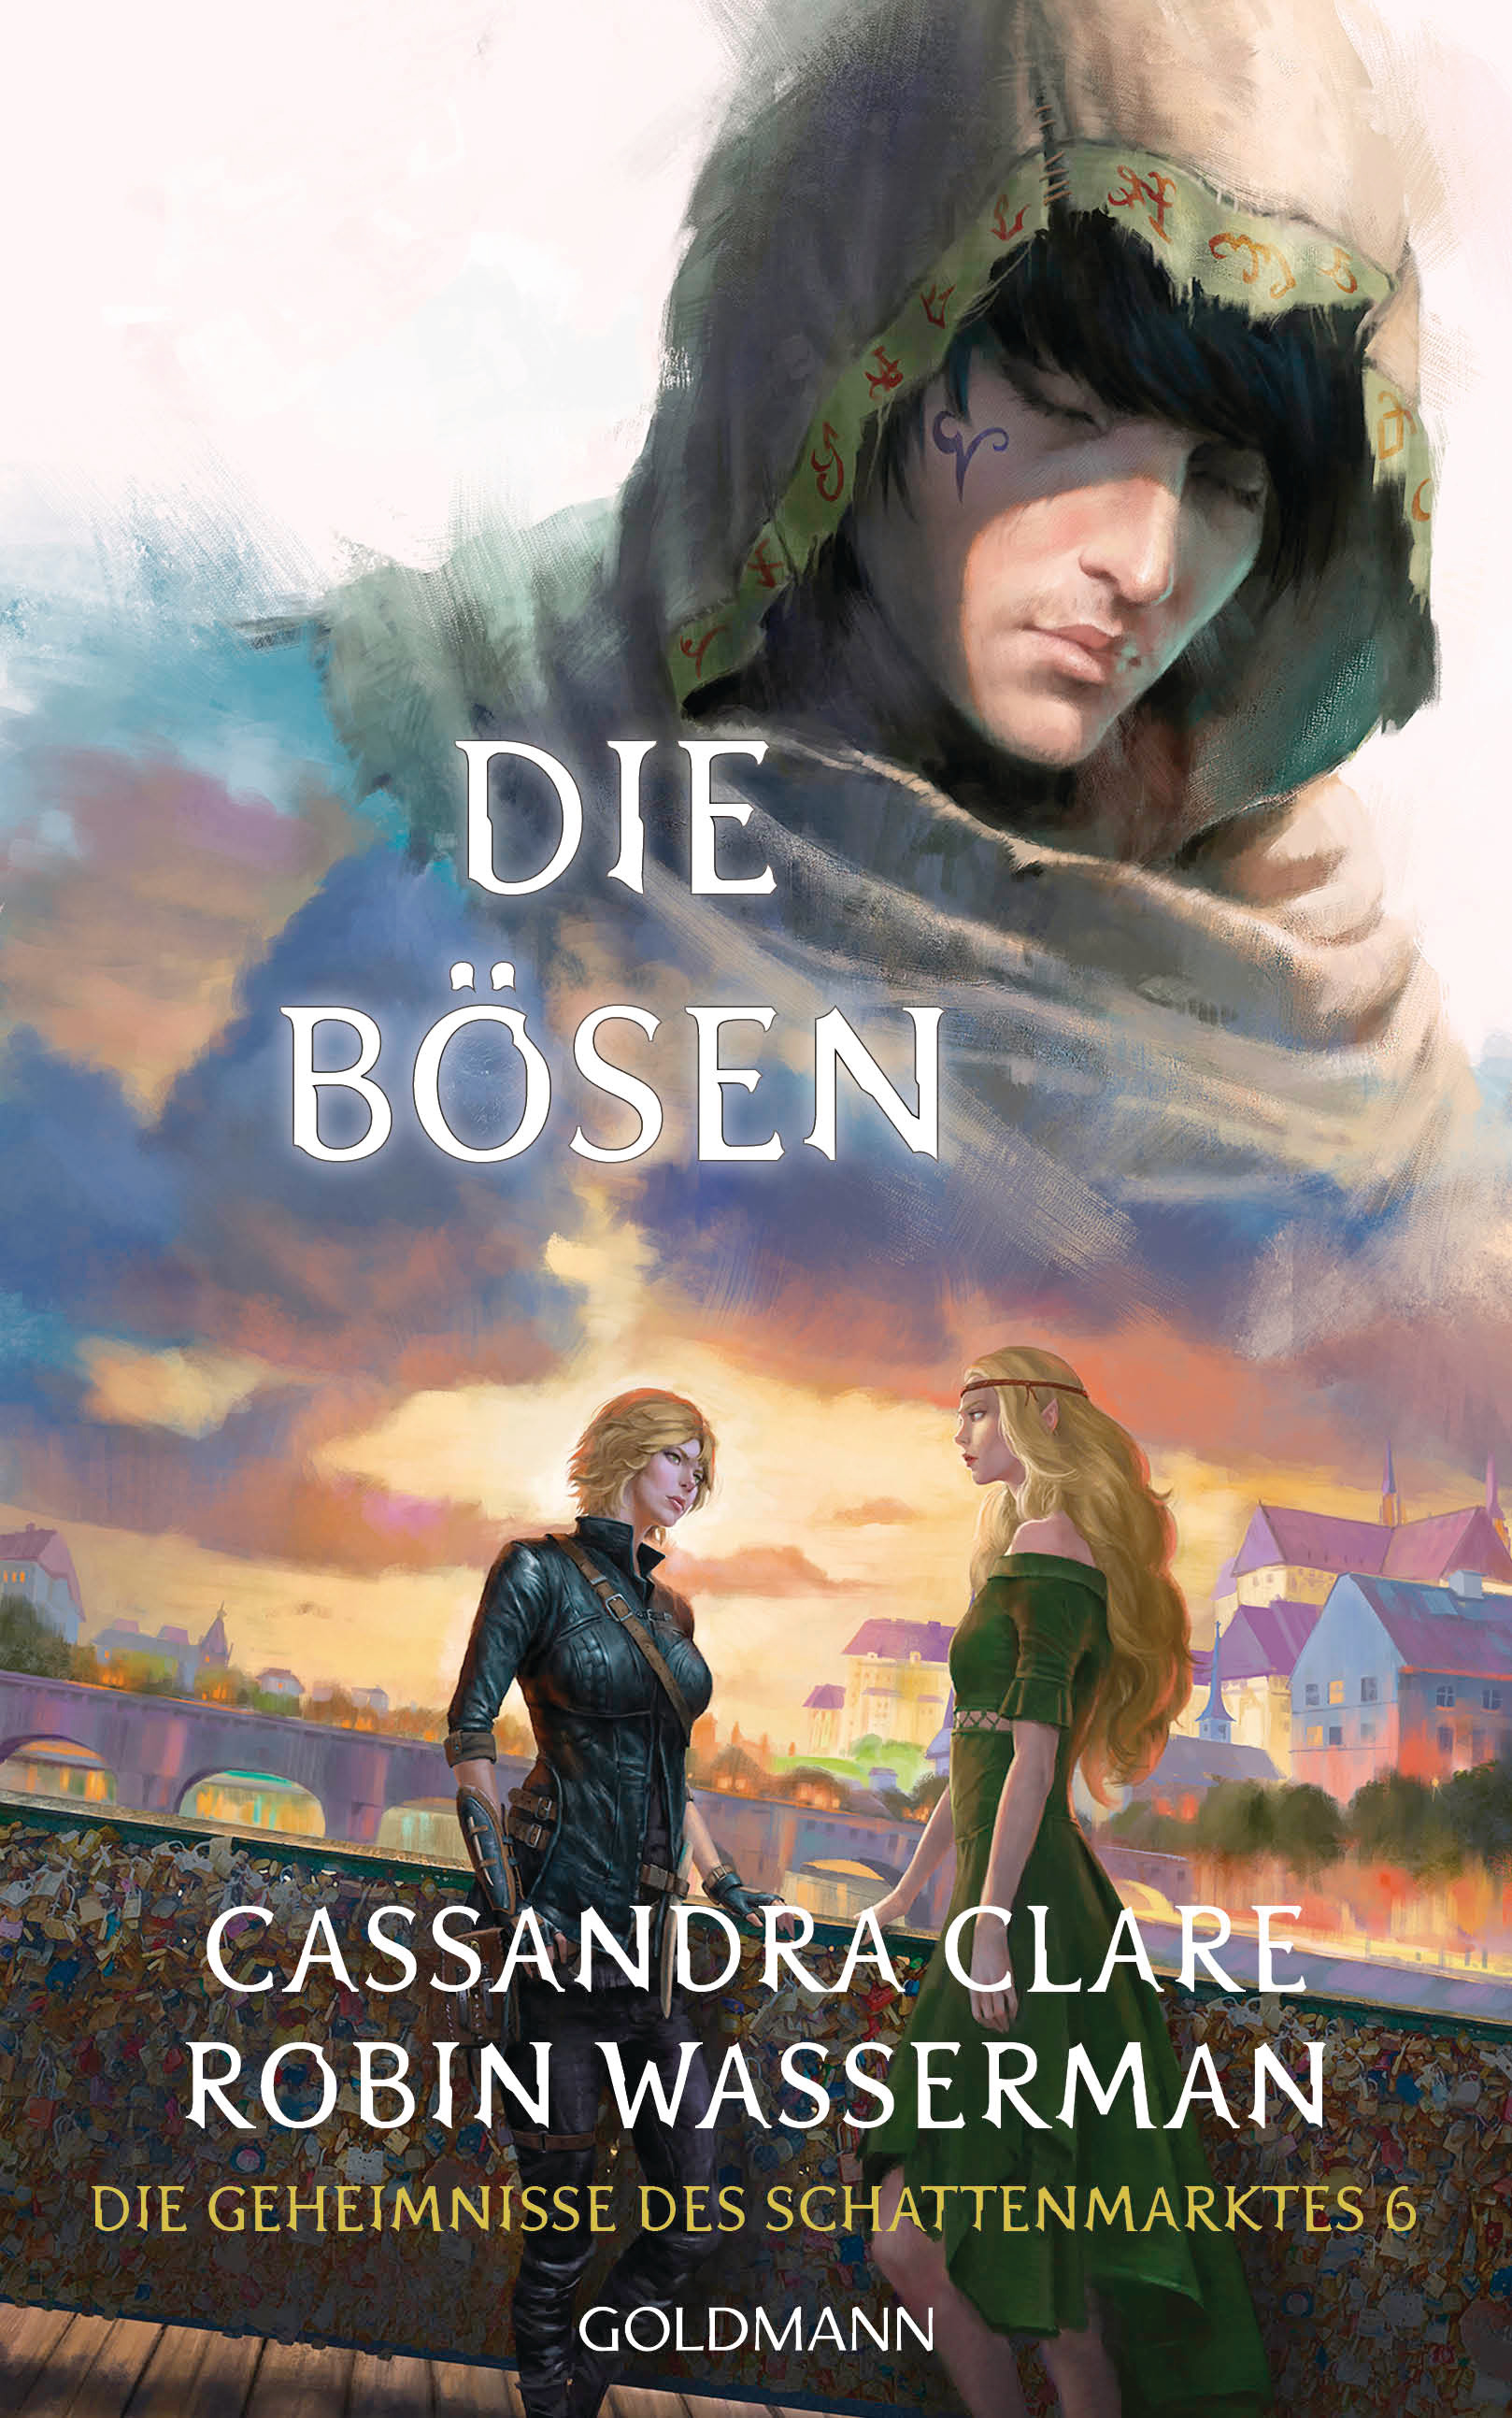 https://www.randomhouse.de/content/edition/covervoila_hires/ClareWassermanDie_Boesen_S6_191512.jpg